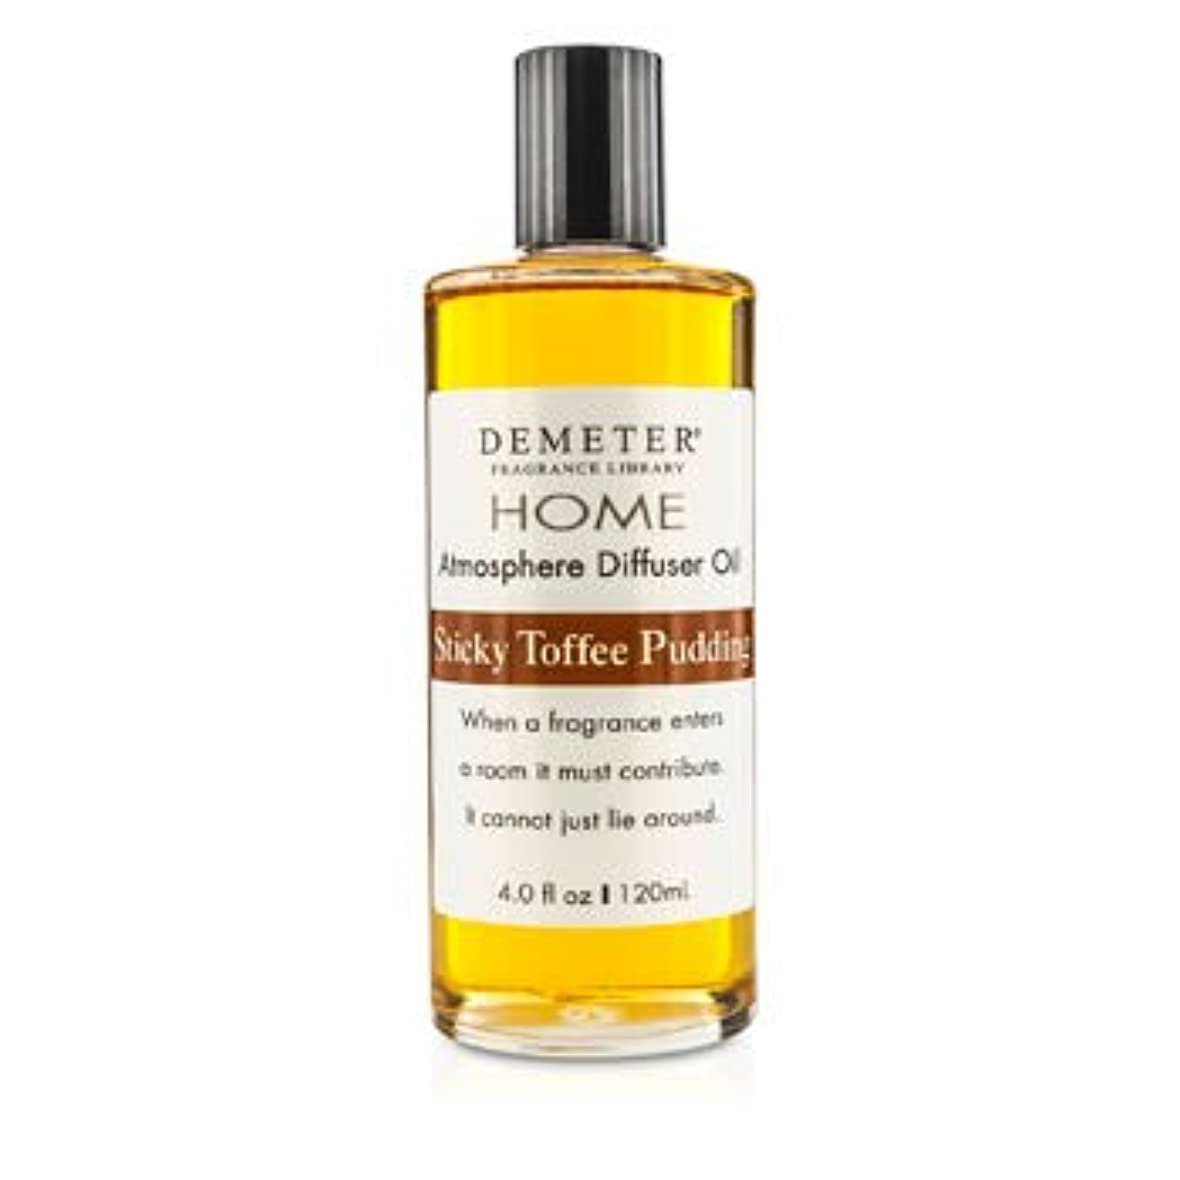 作物主権者幻想[Demeter] Atmosphere Diffuser Oil - Sticky Toffee Pudding 120ml/4oz